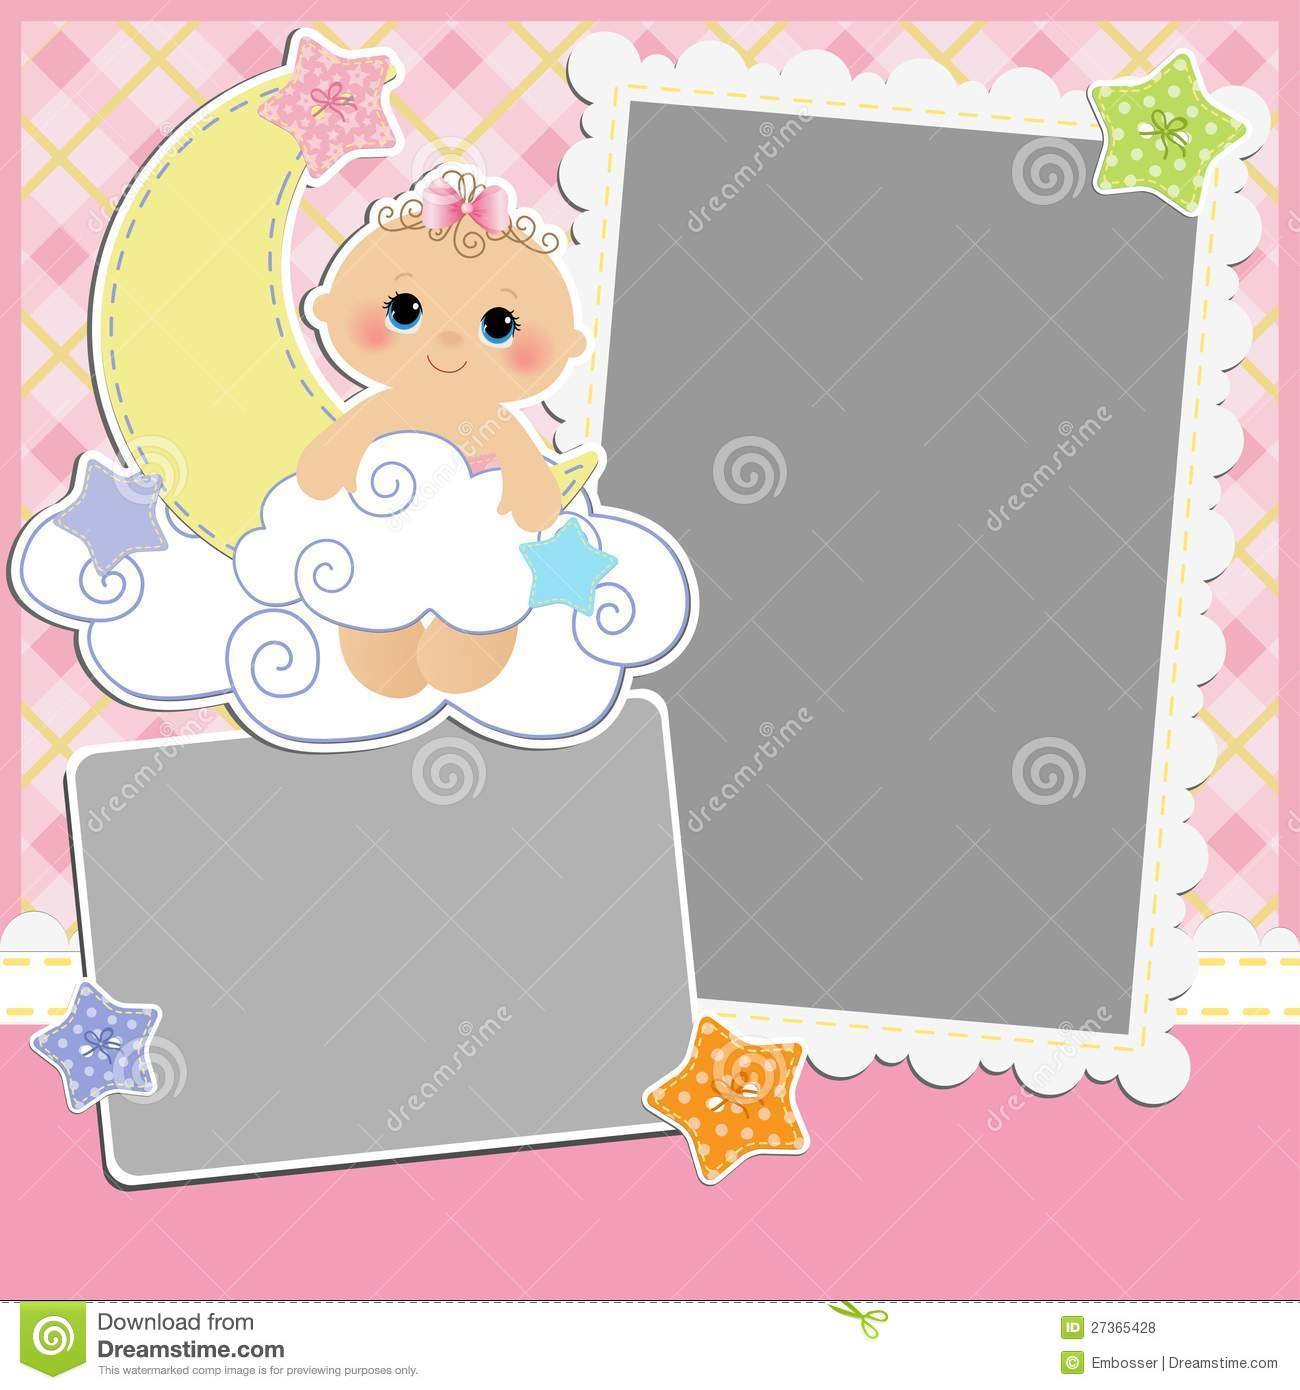 003 Free Printable Baby Cards Templates Template Ideas About Every - Free Printable Baby Cards Templates